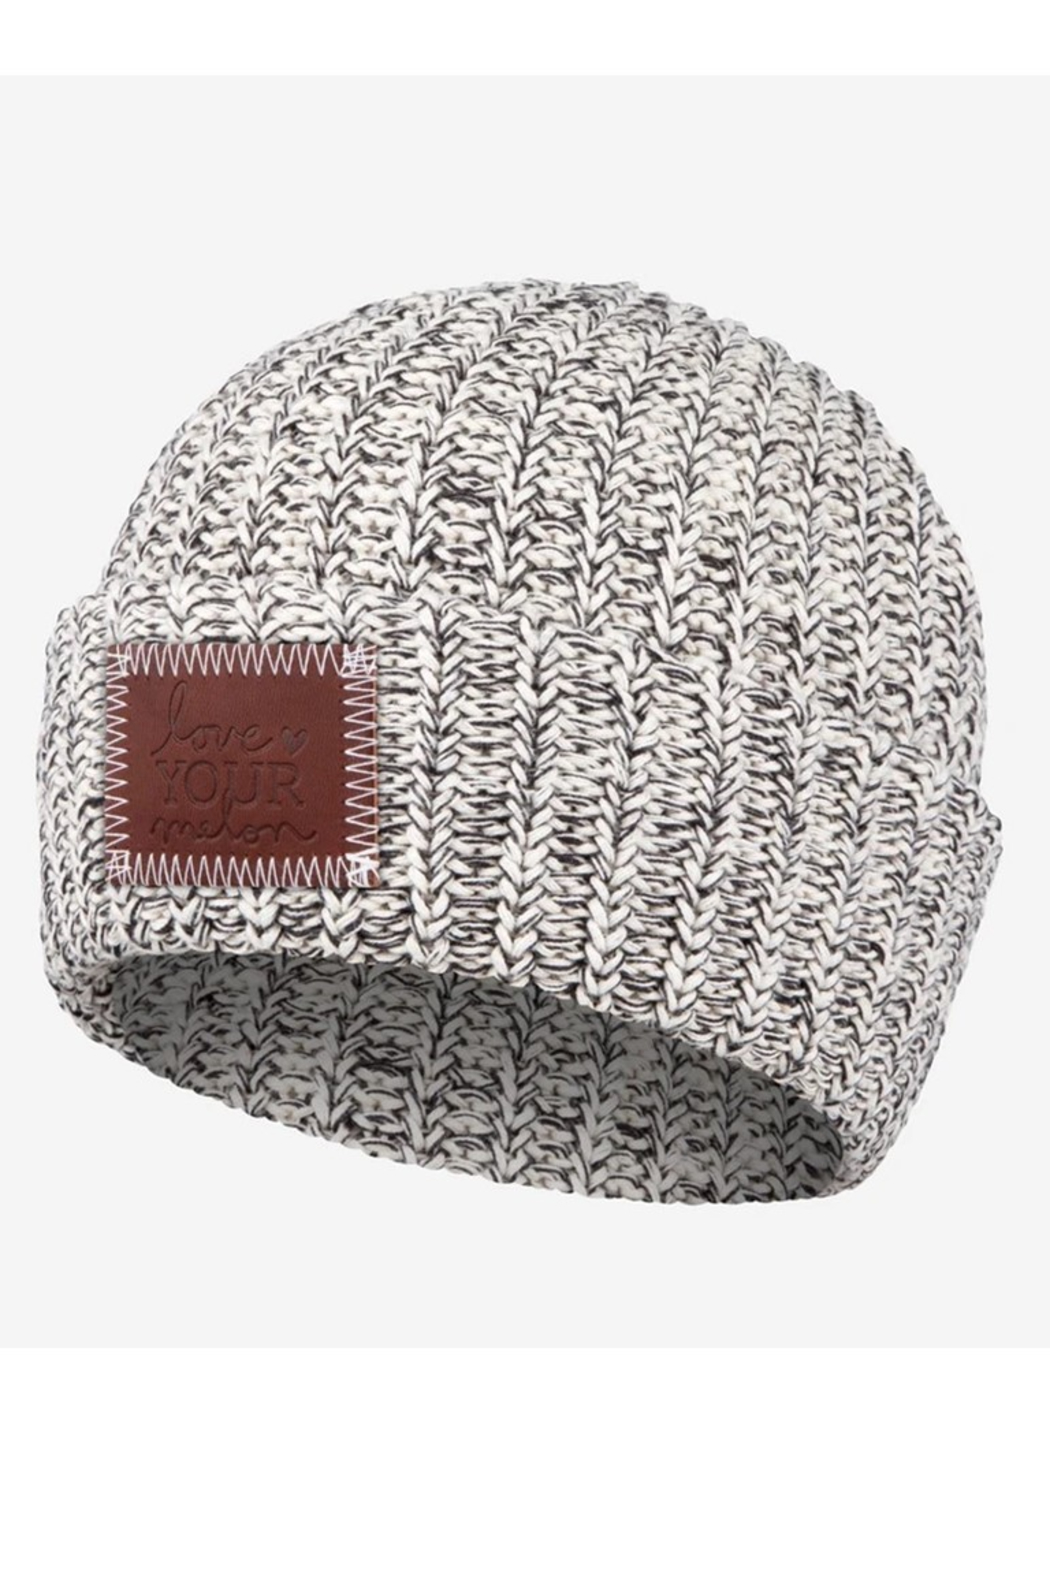 Love Your Melon Black Speckled Cuffed Beanie - Main Image